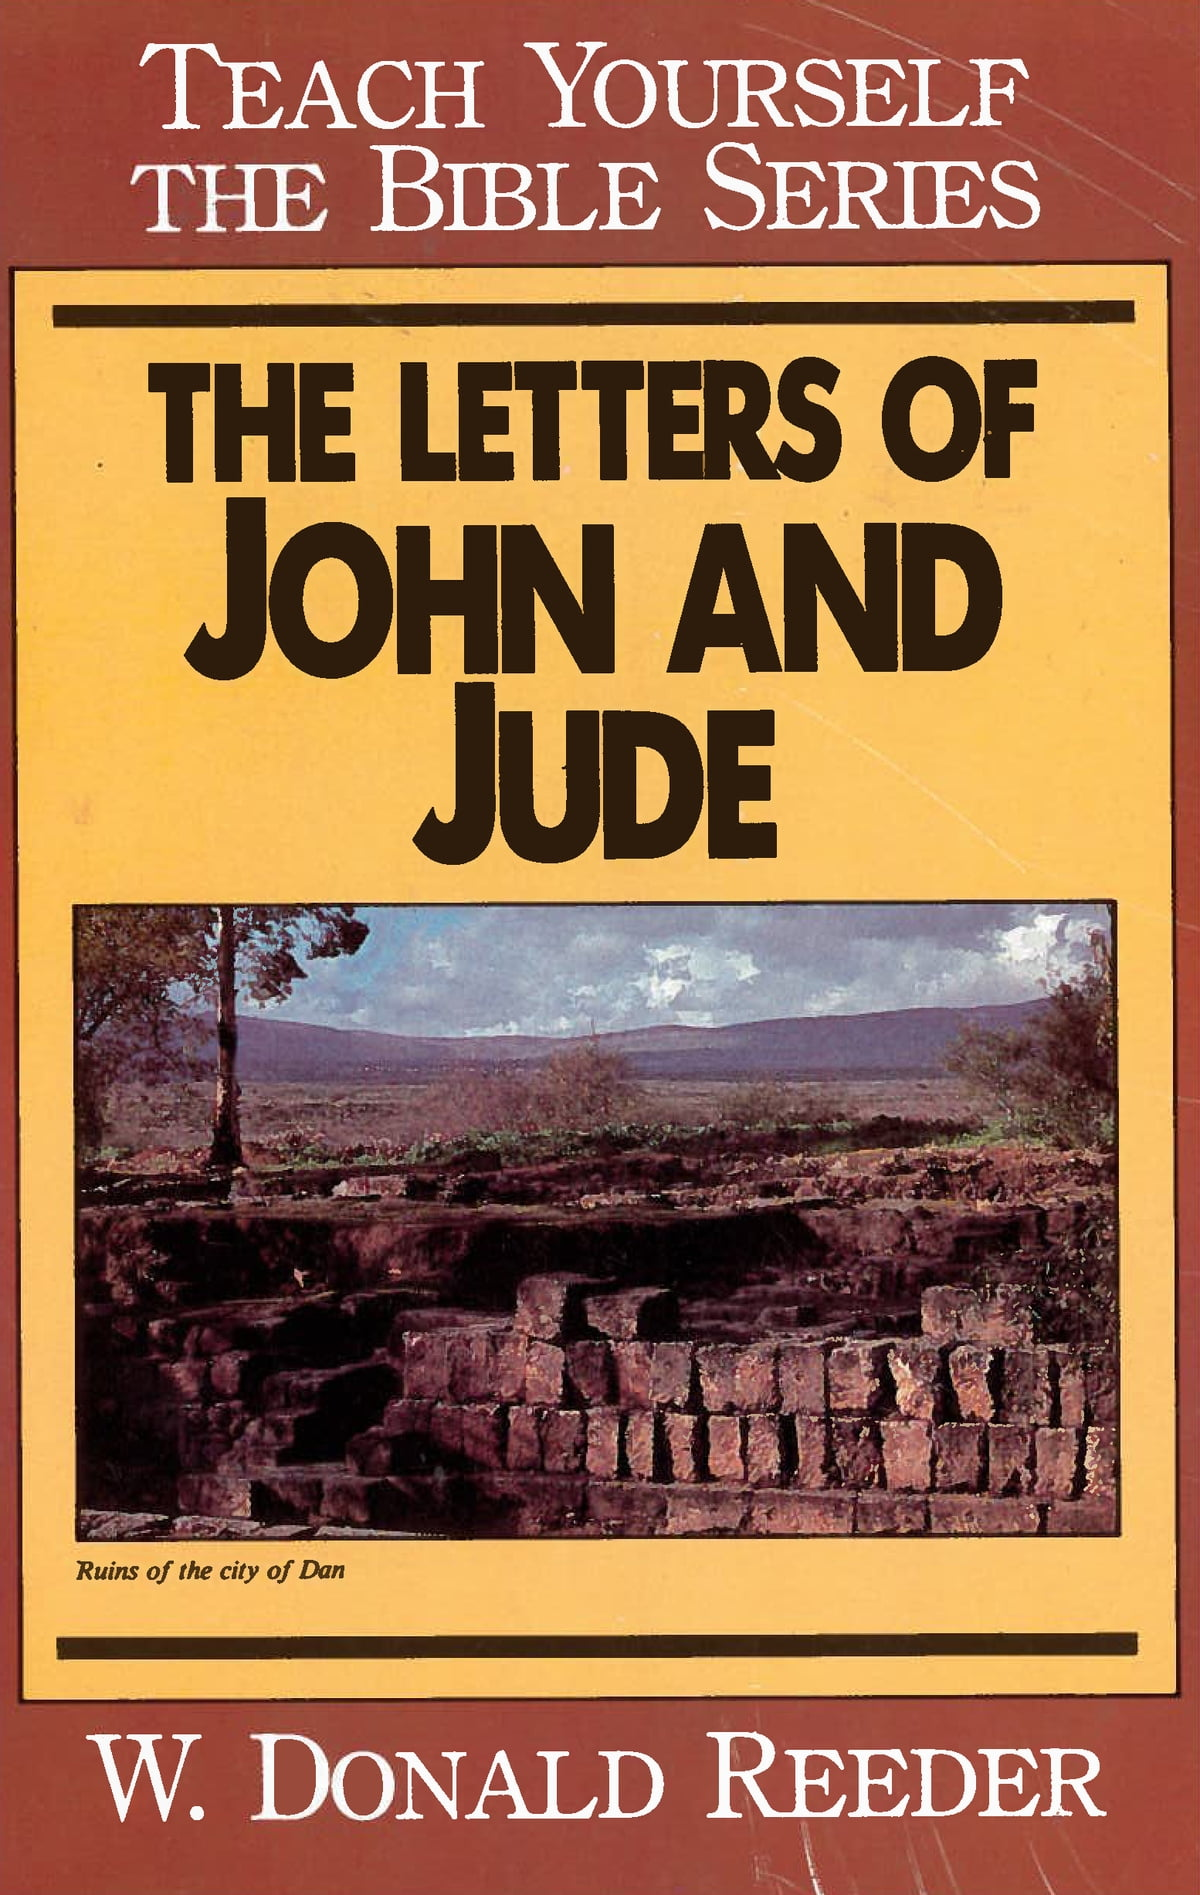 letters of john and jude teach yourself the bible series ebook by donald reeder 9780802496065 rakuten kobo